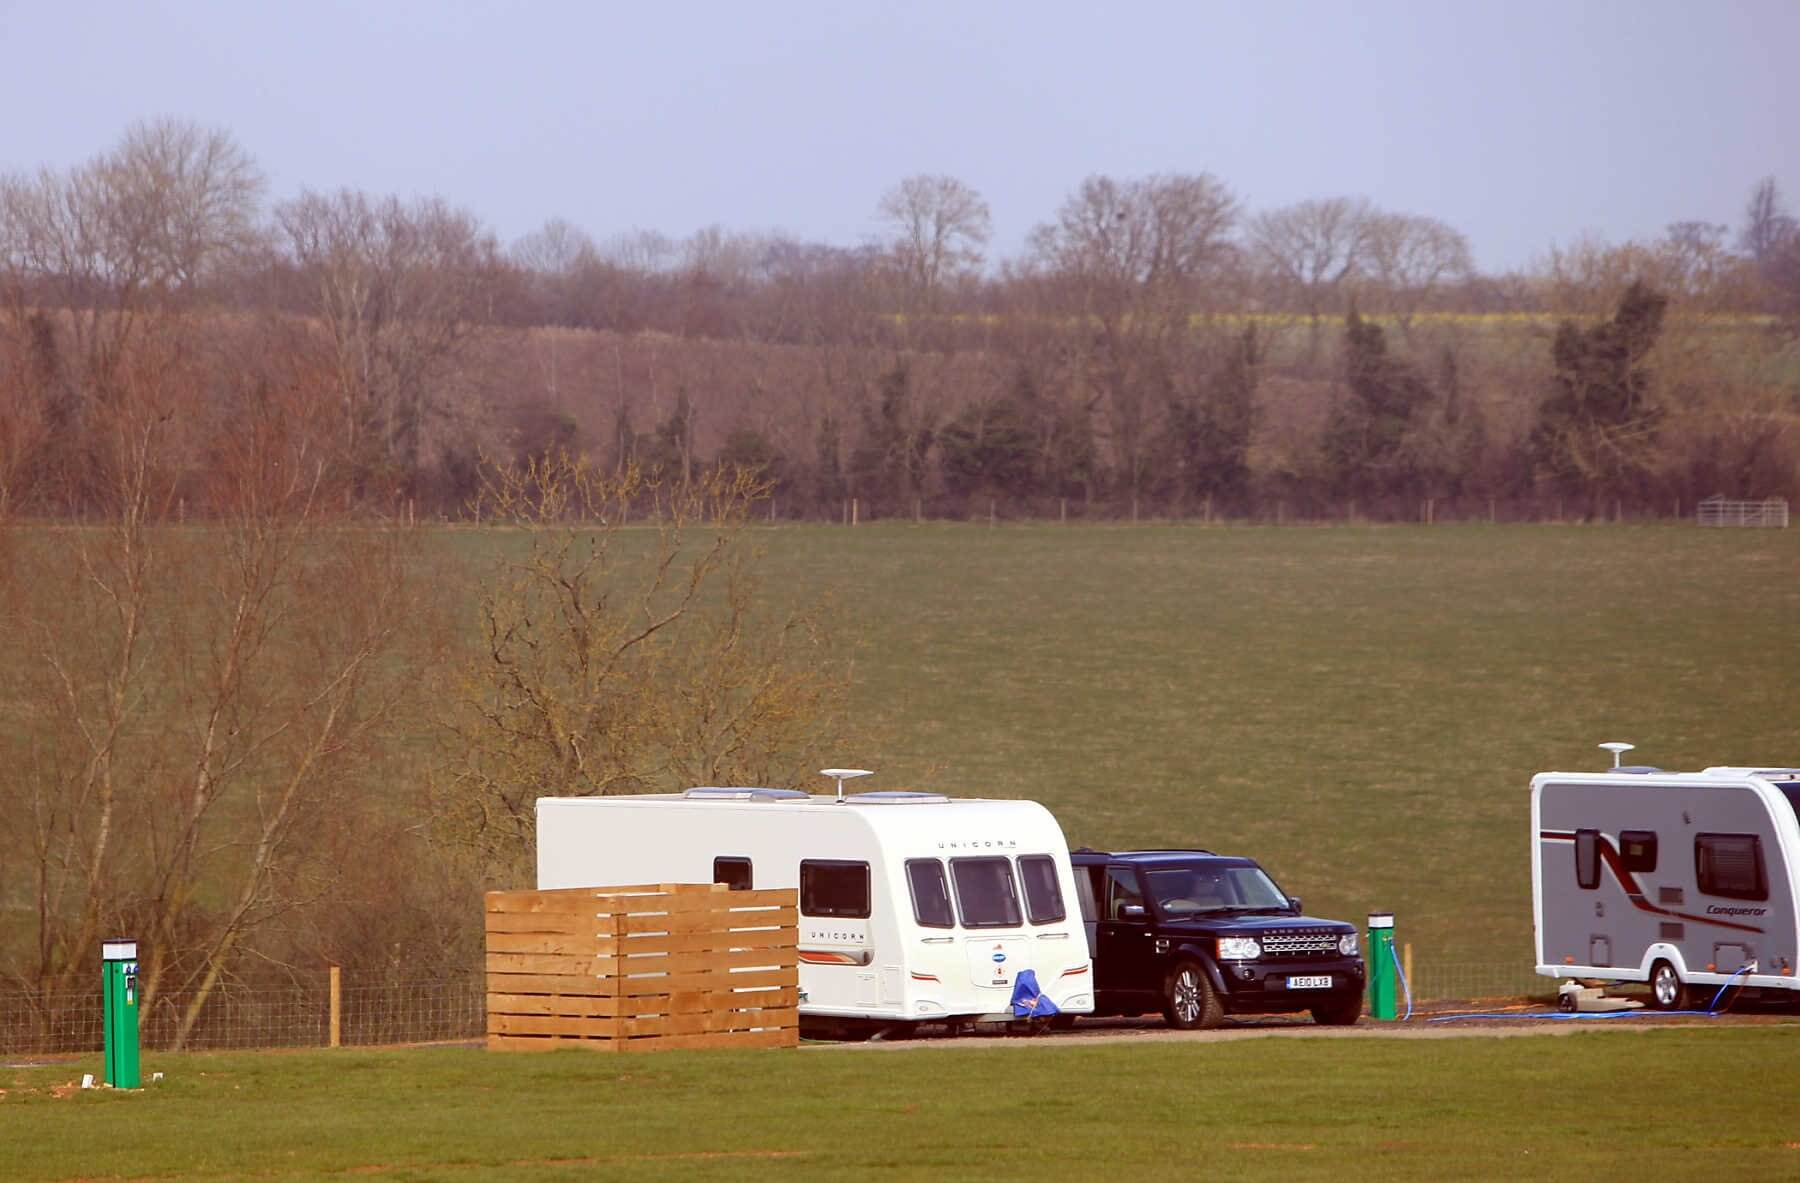 New Lodge Farm Caravan And Camping Site